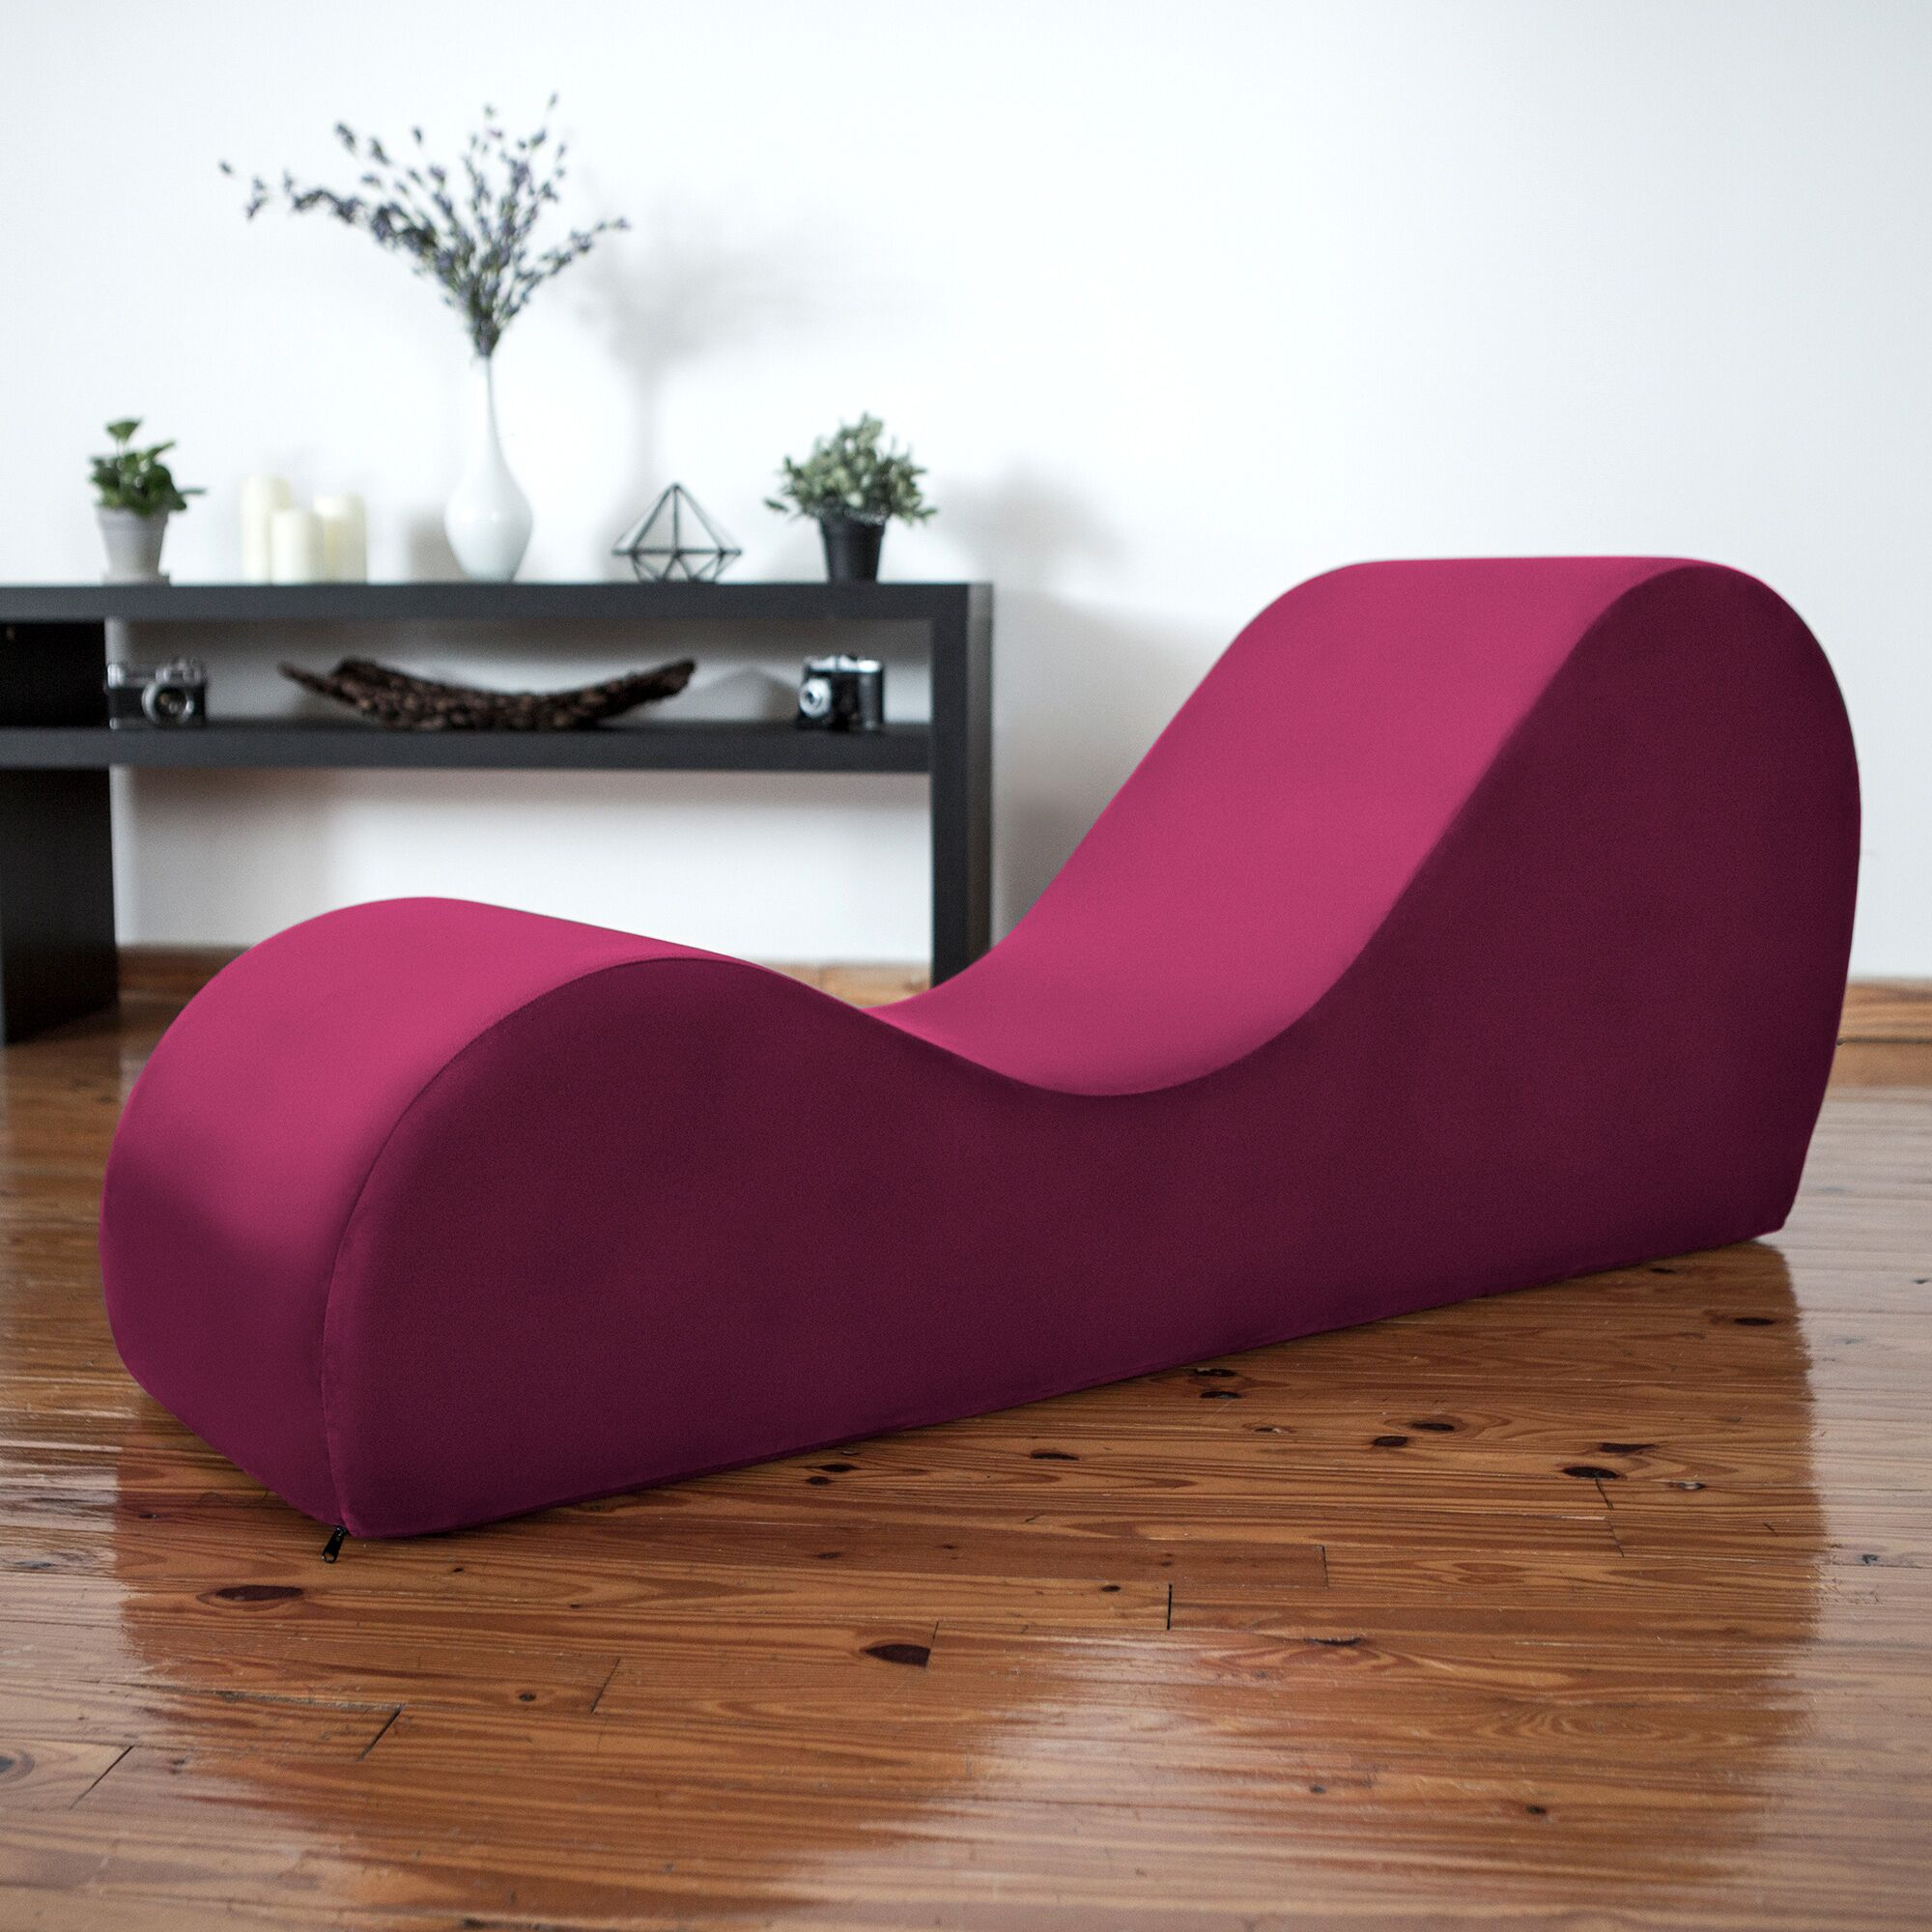 Symons Yoga Chaise Lounge Upholstery: Wine Red